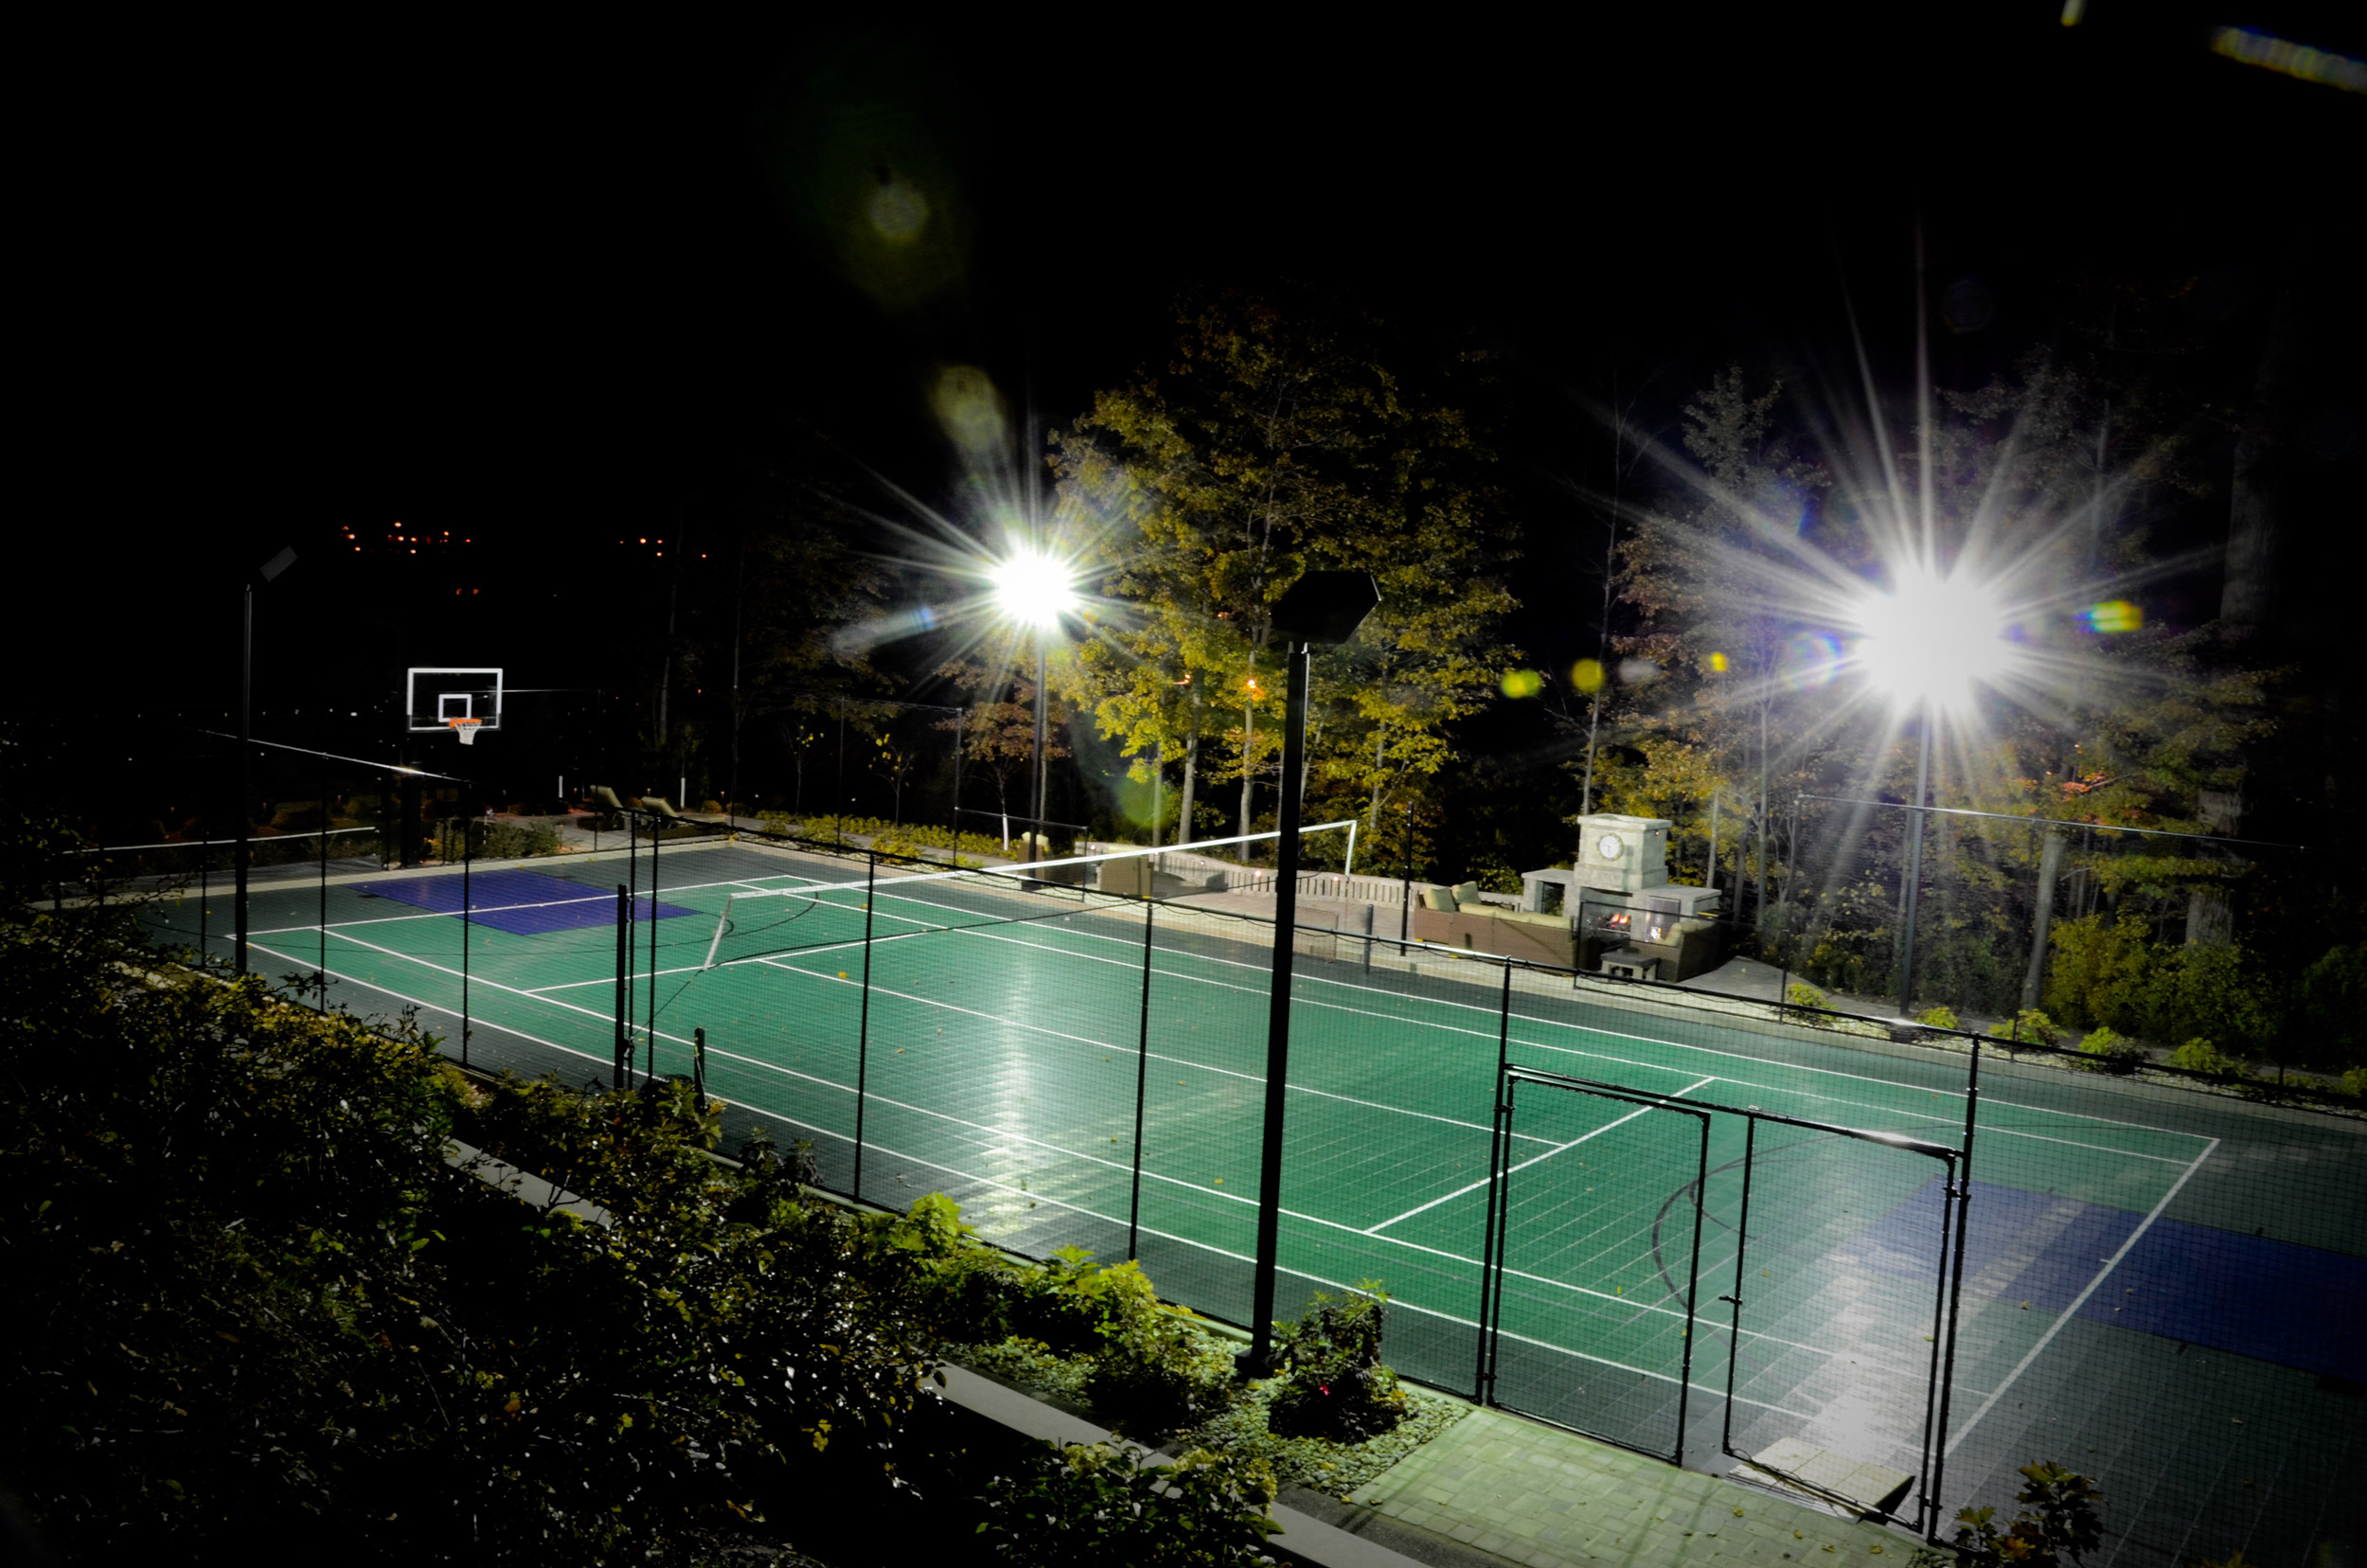 Take Your Home Court to the Next Level